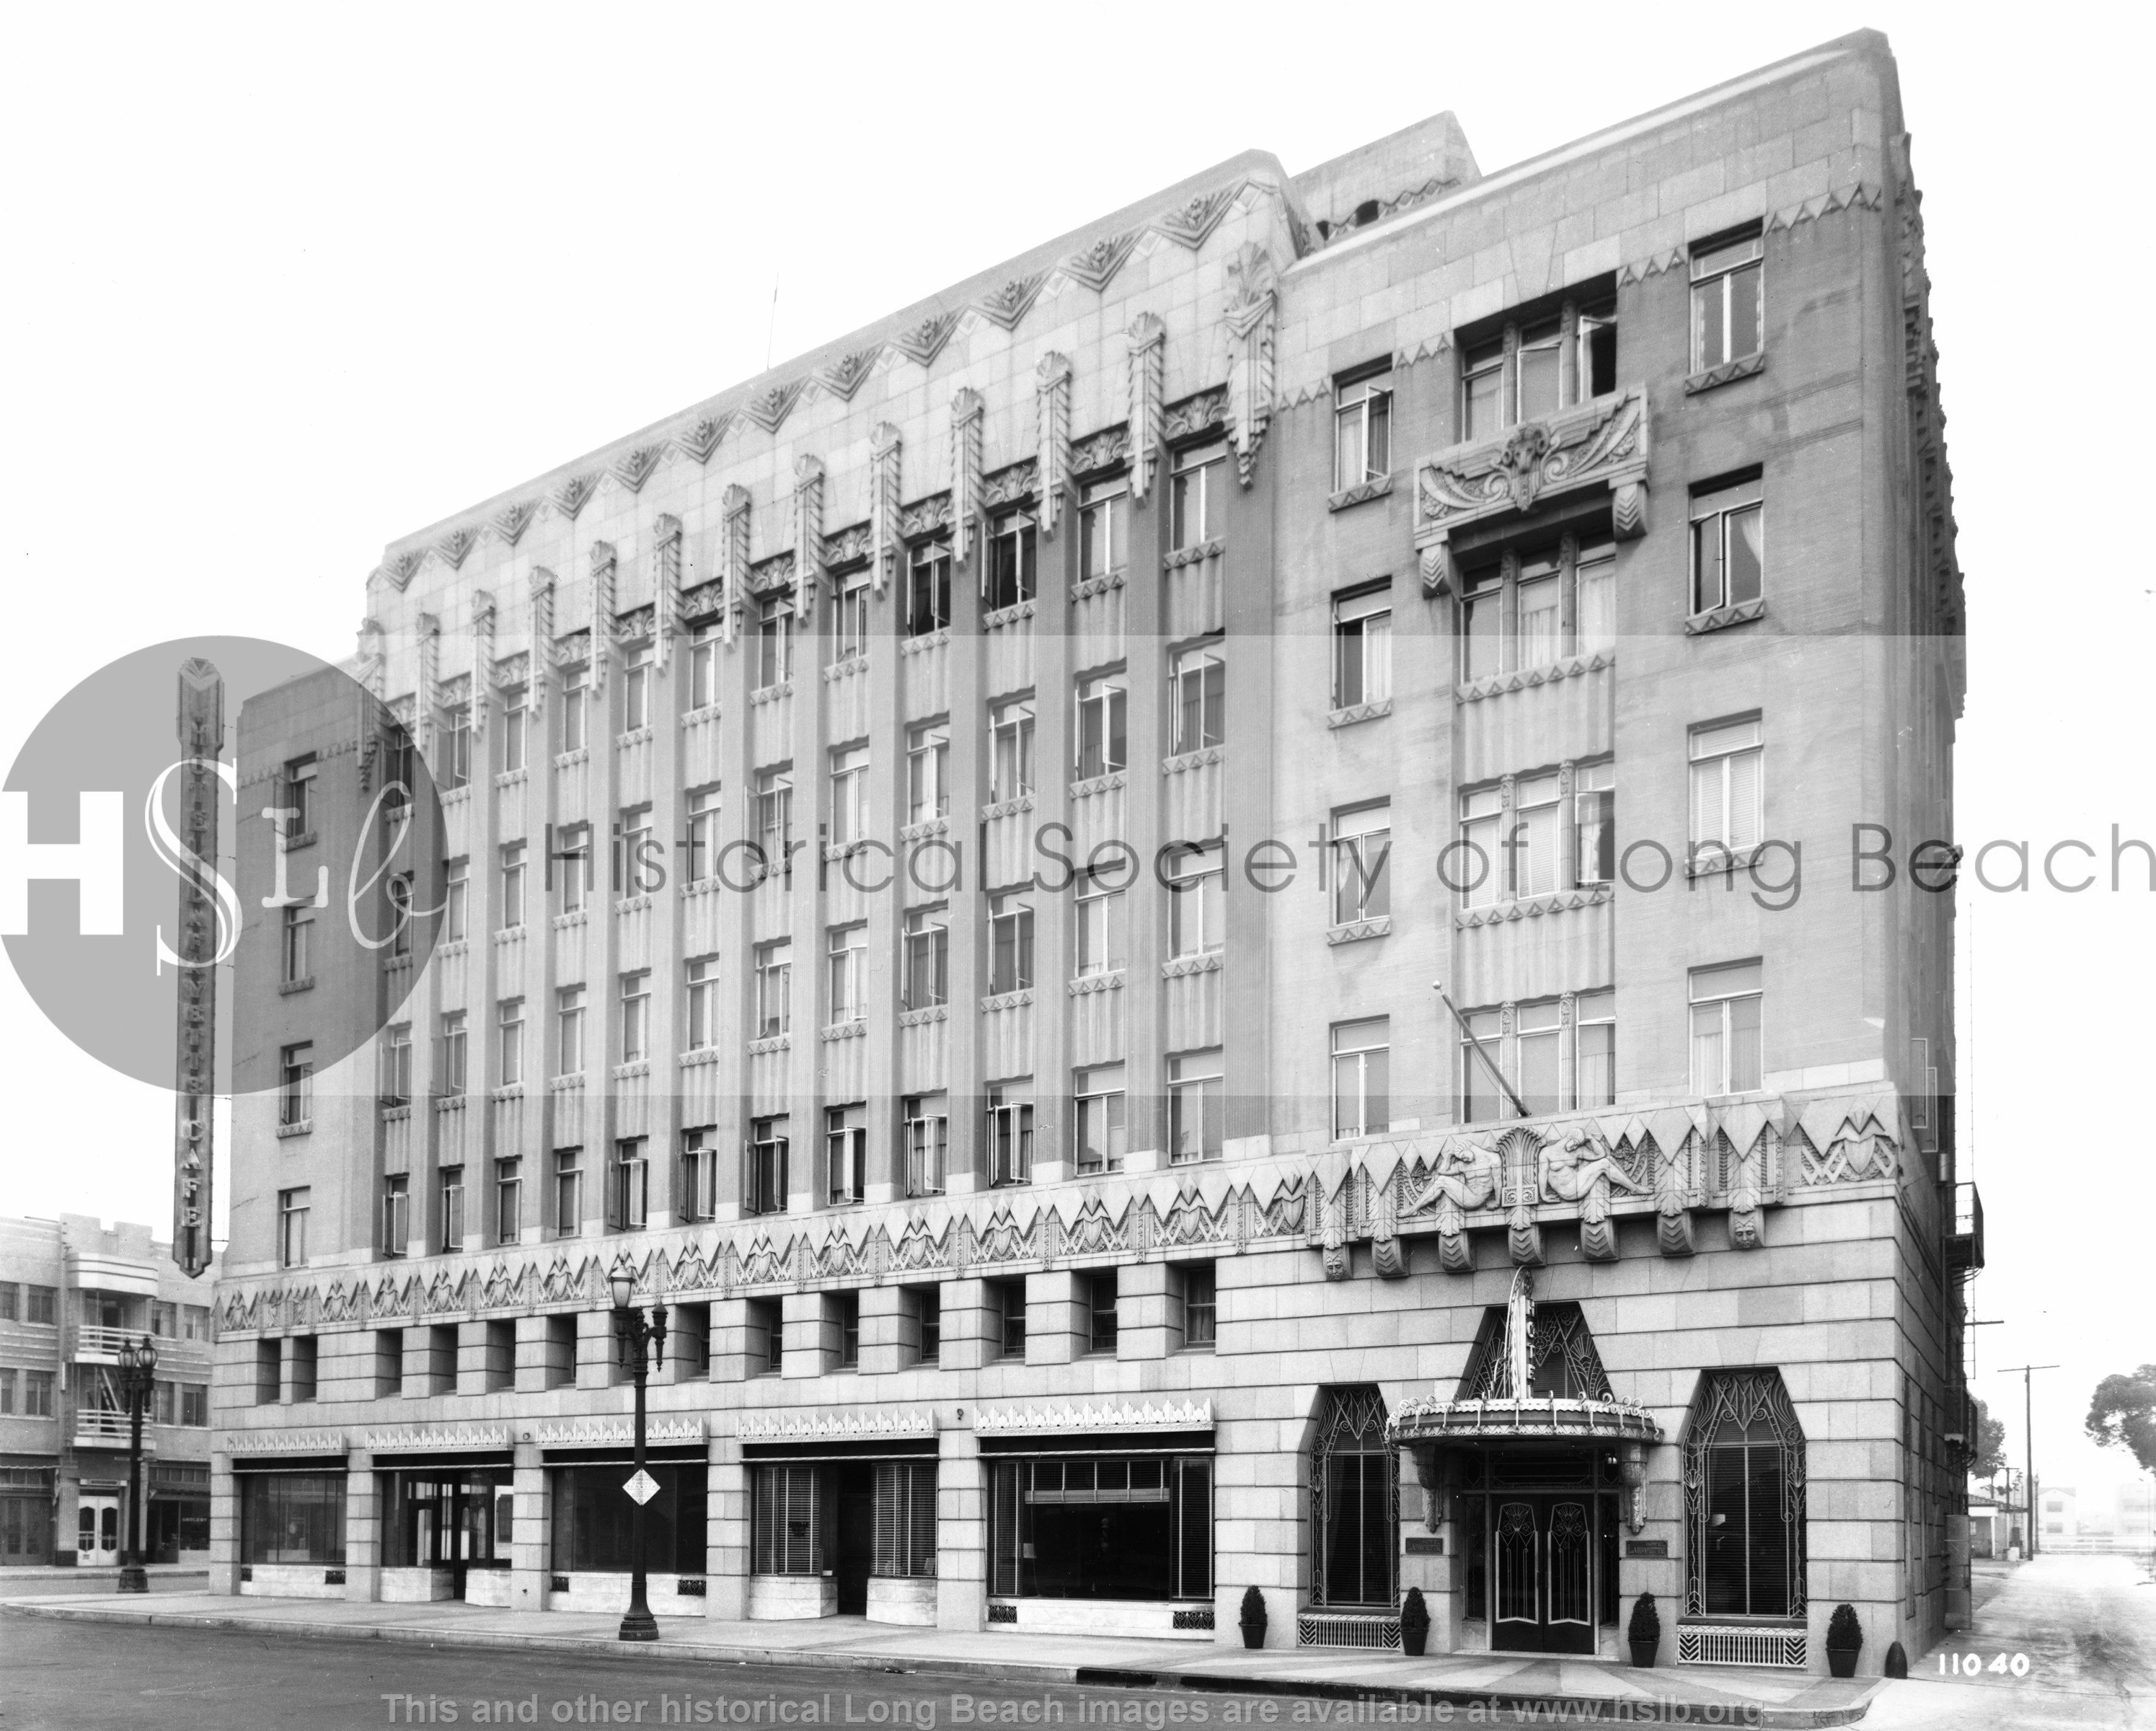 Lafayette Hotel, 1930s historical photo